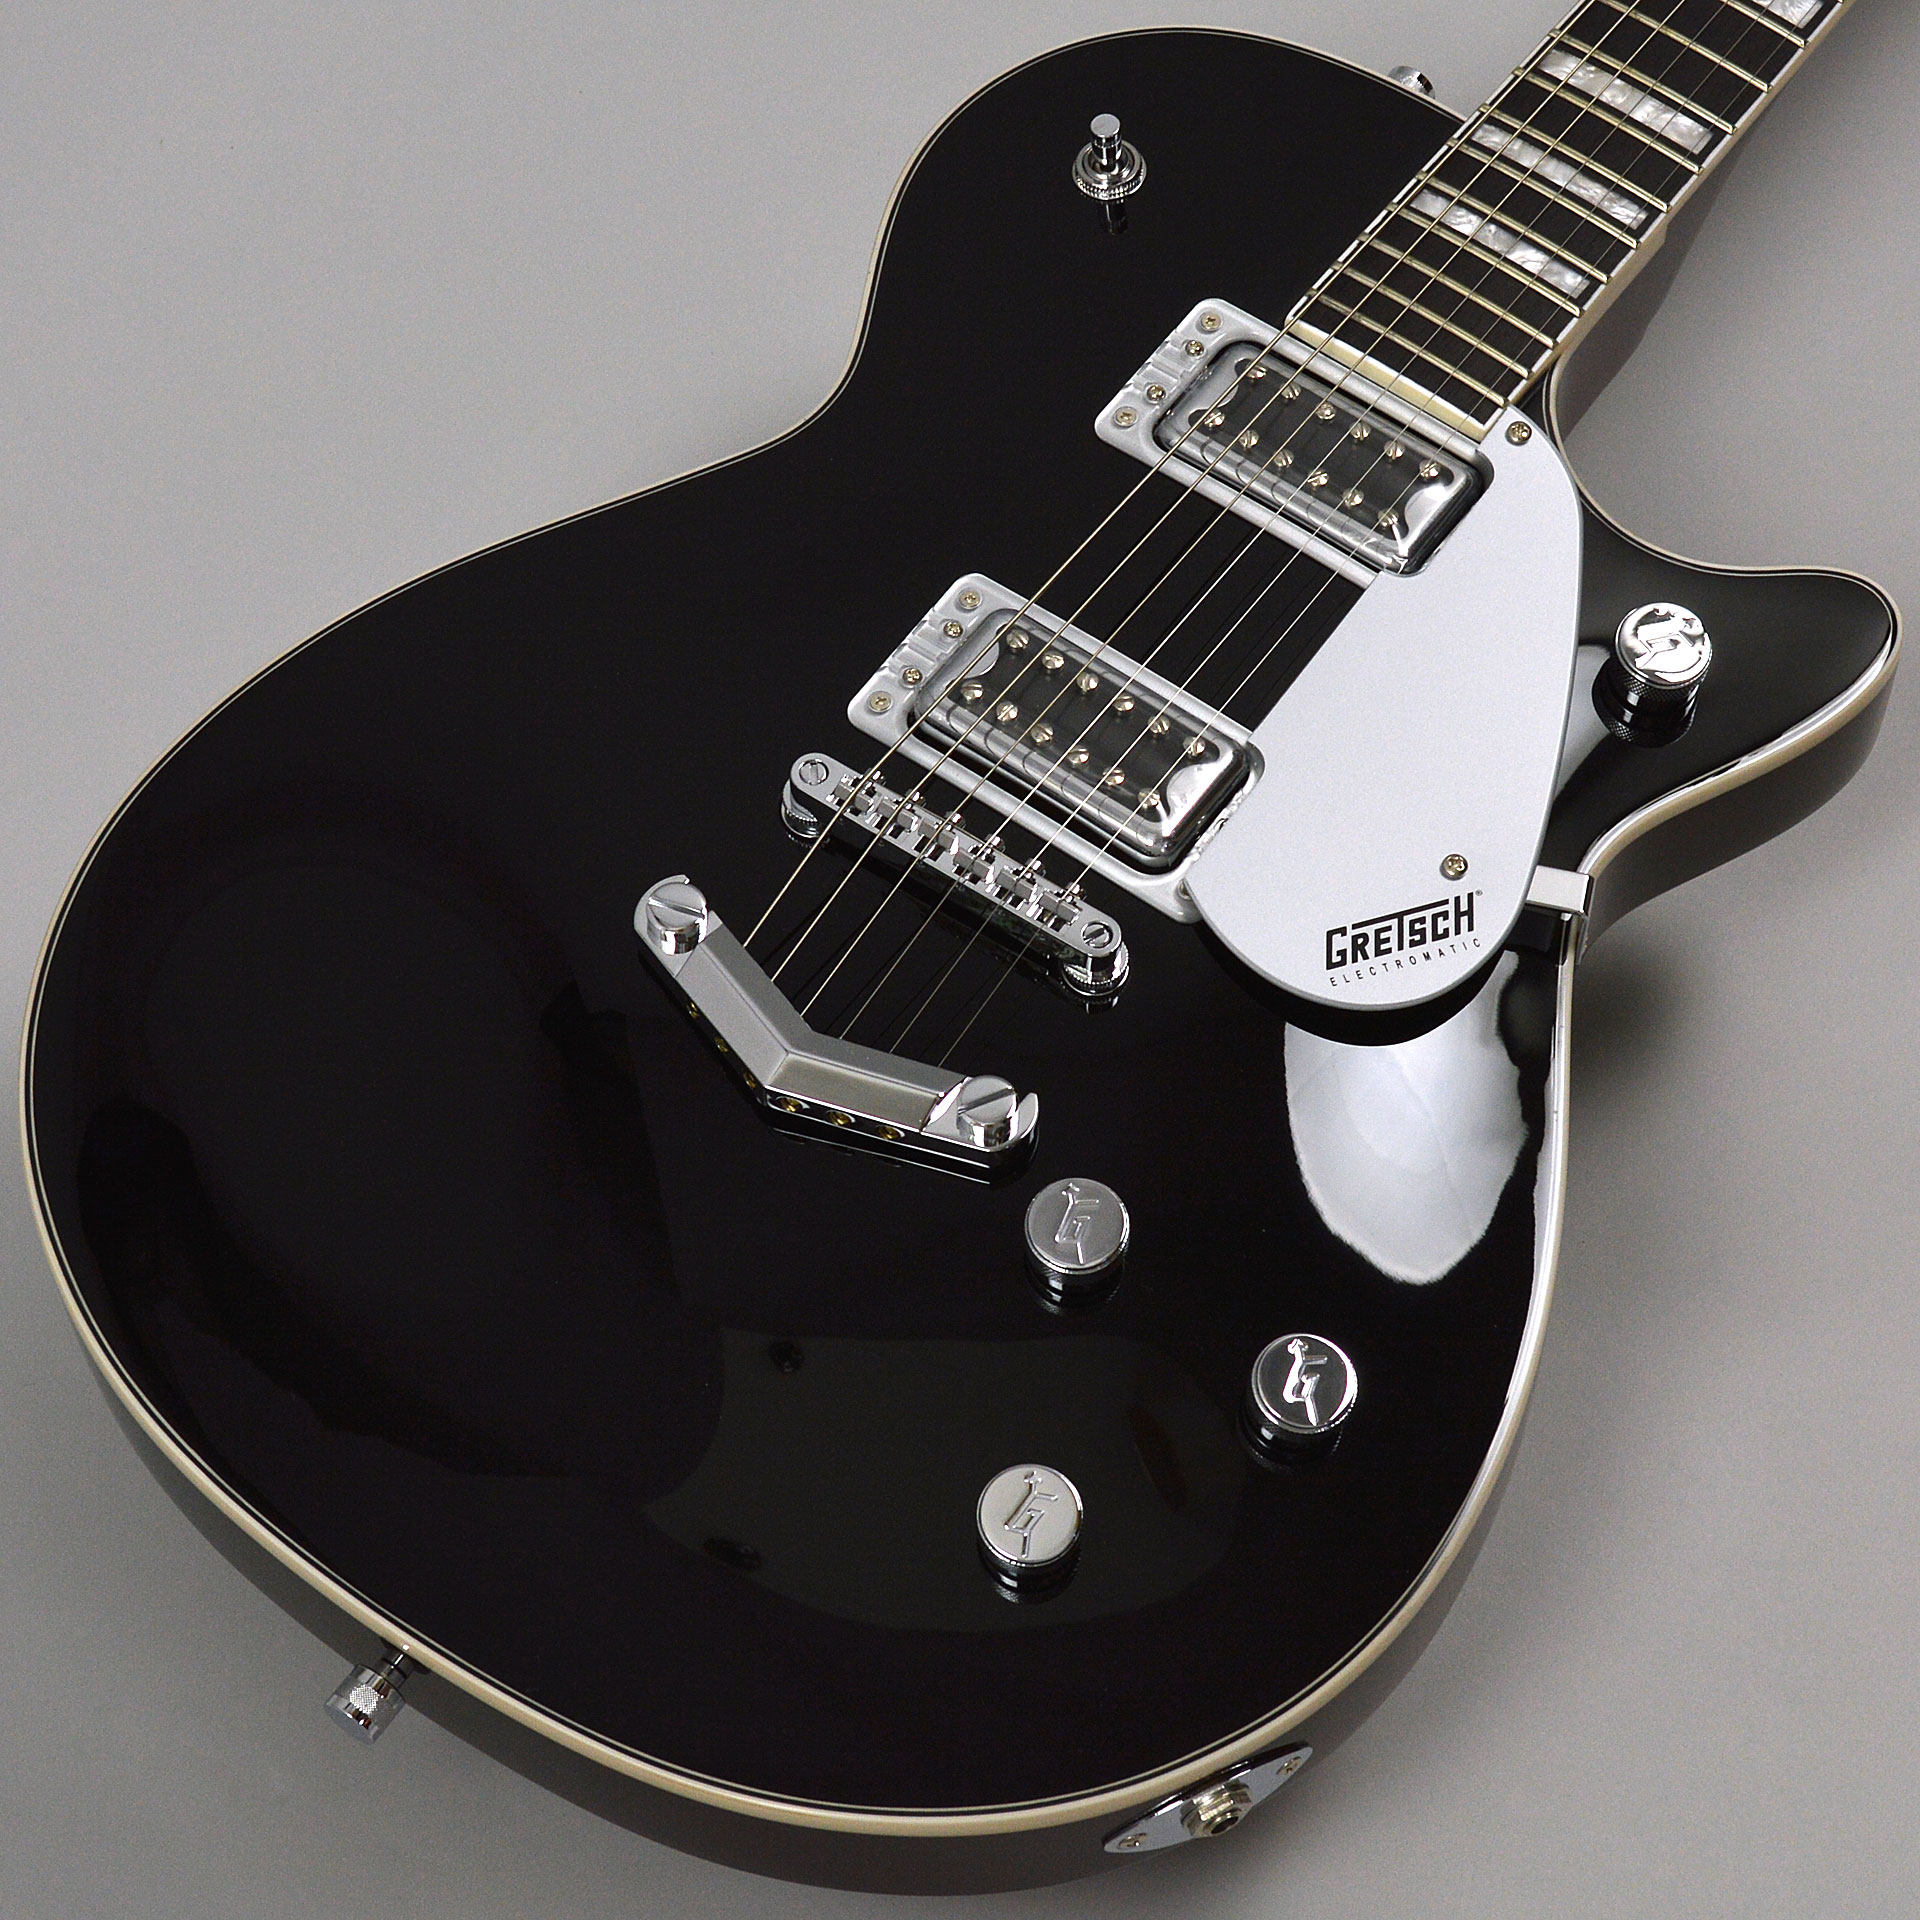 G5220 Electromatic Jet BT Single-Cut with V-Stoptail Blackのボディトップ-アップ画像